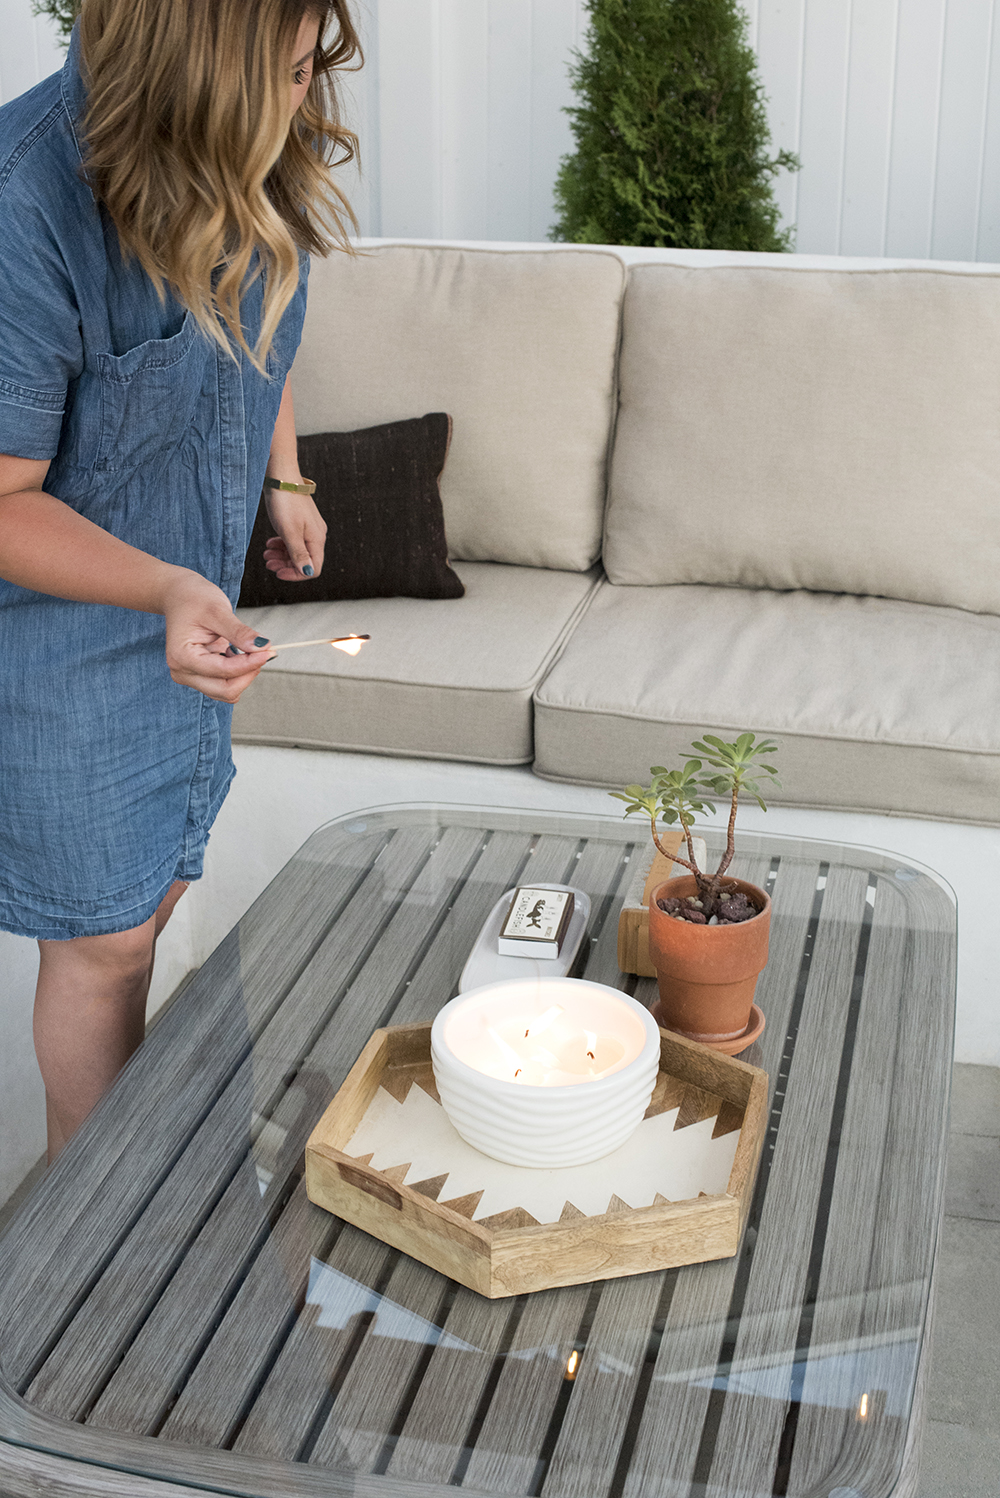 Repurposing a Candle Into A Succulent Planter - roomfortuesday.com